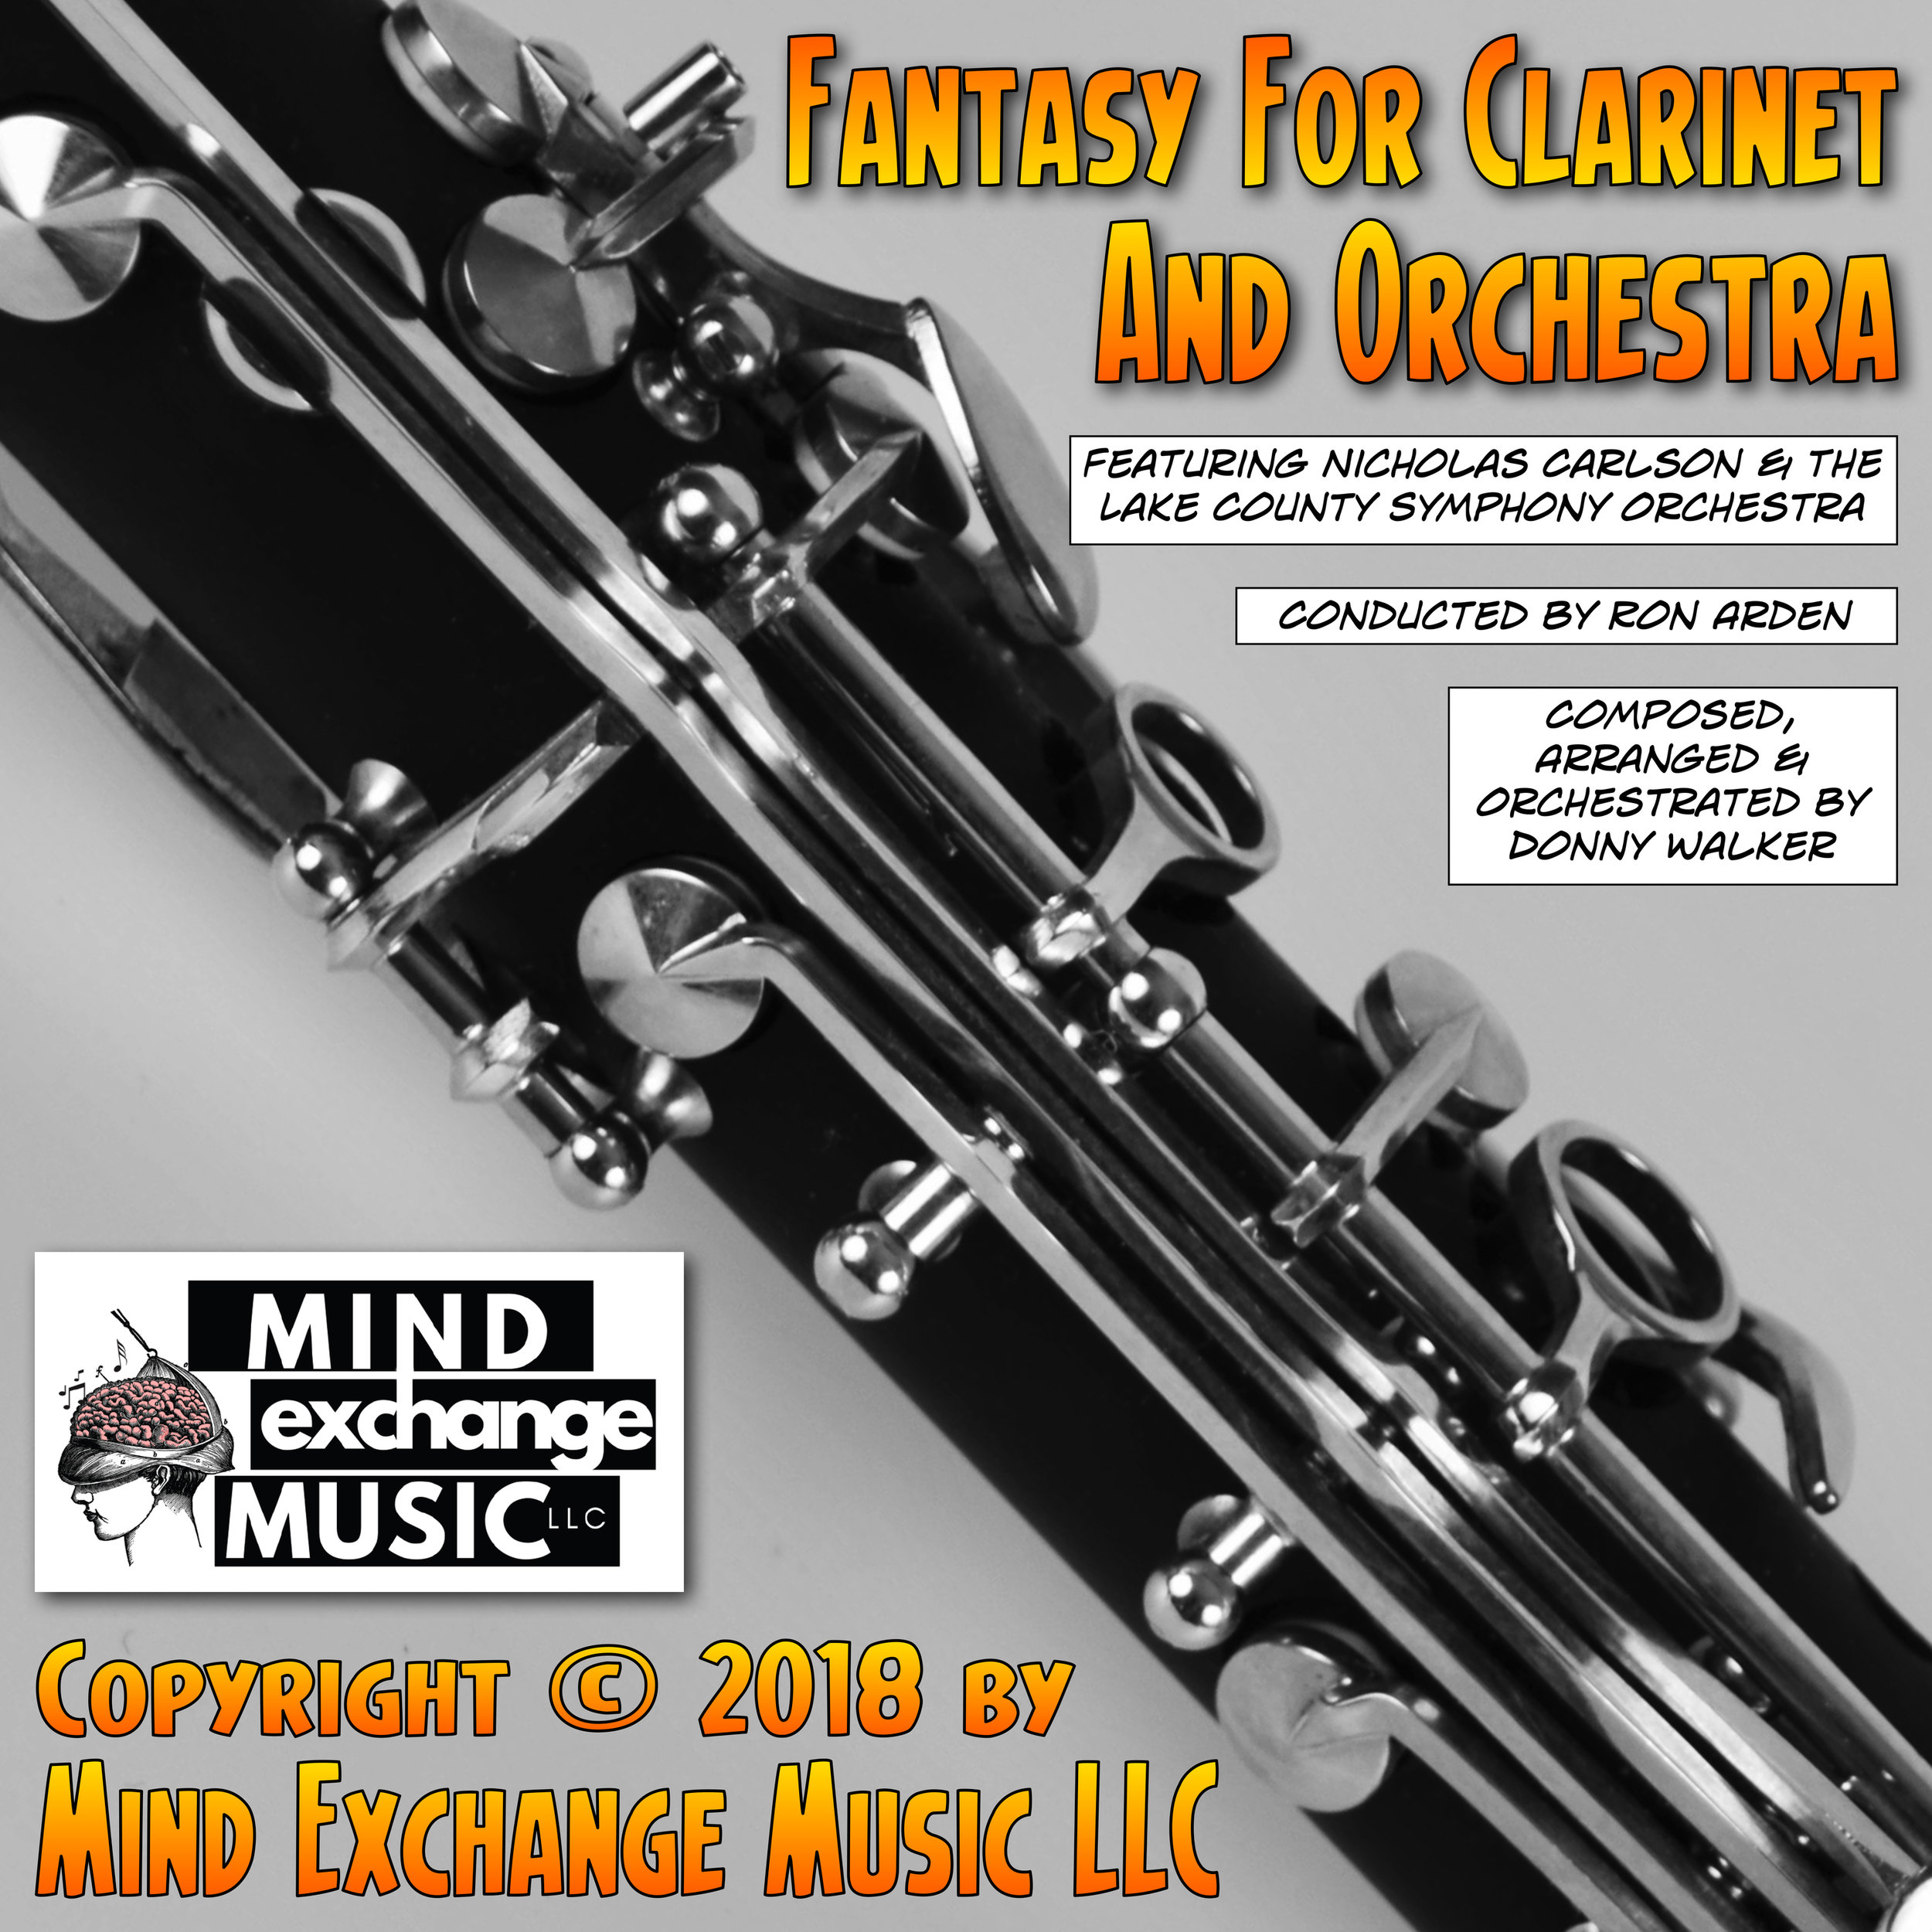 Mind Exchange Music's Soundtrack Fantasy For Clarinet And Orchestra